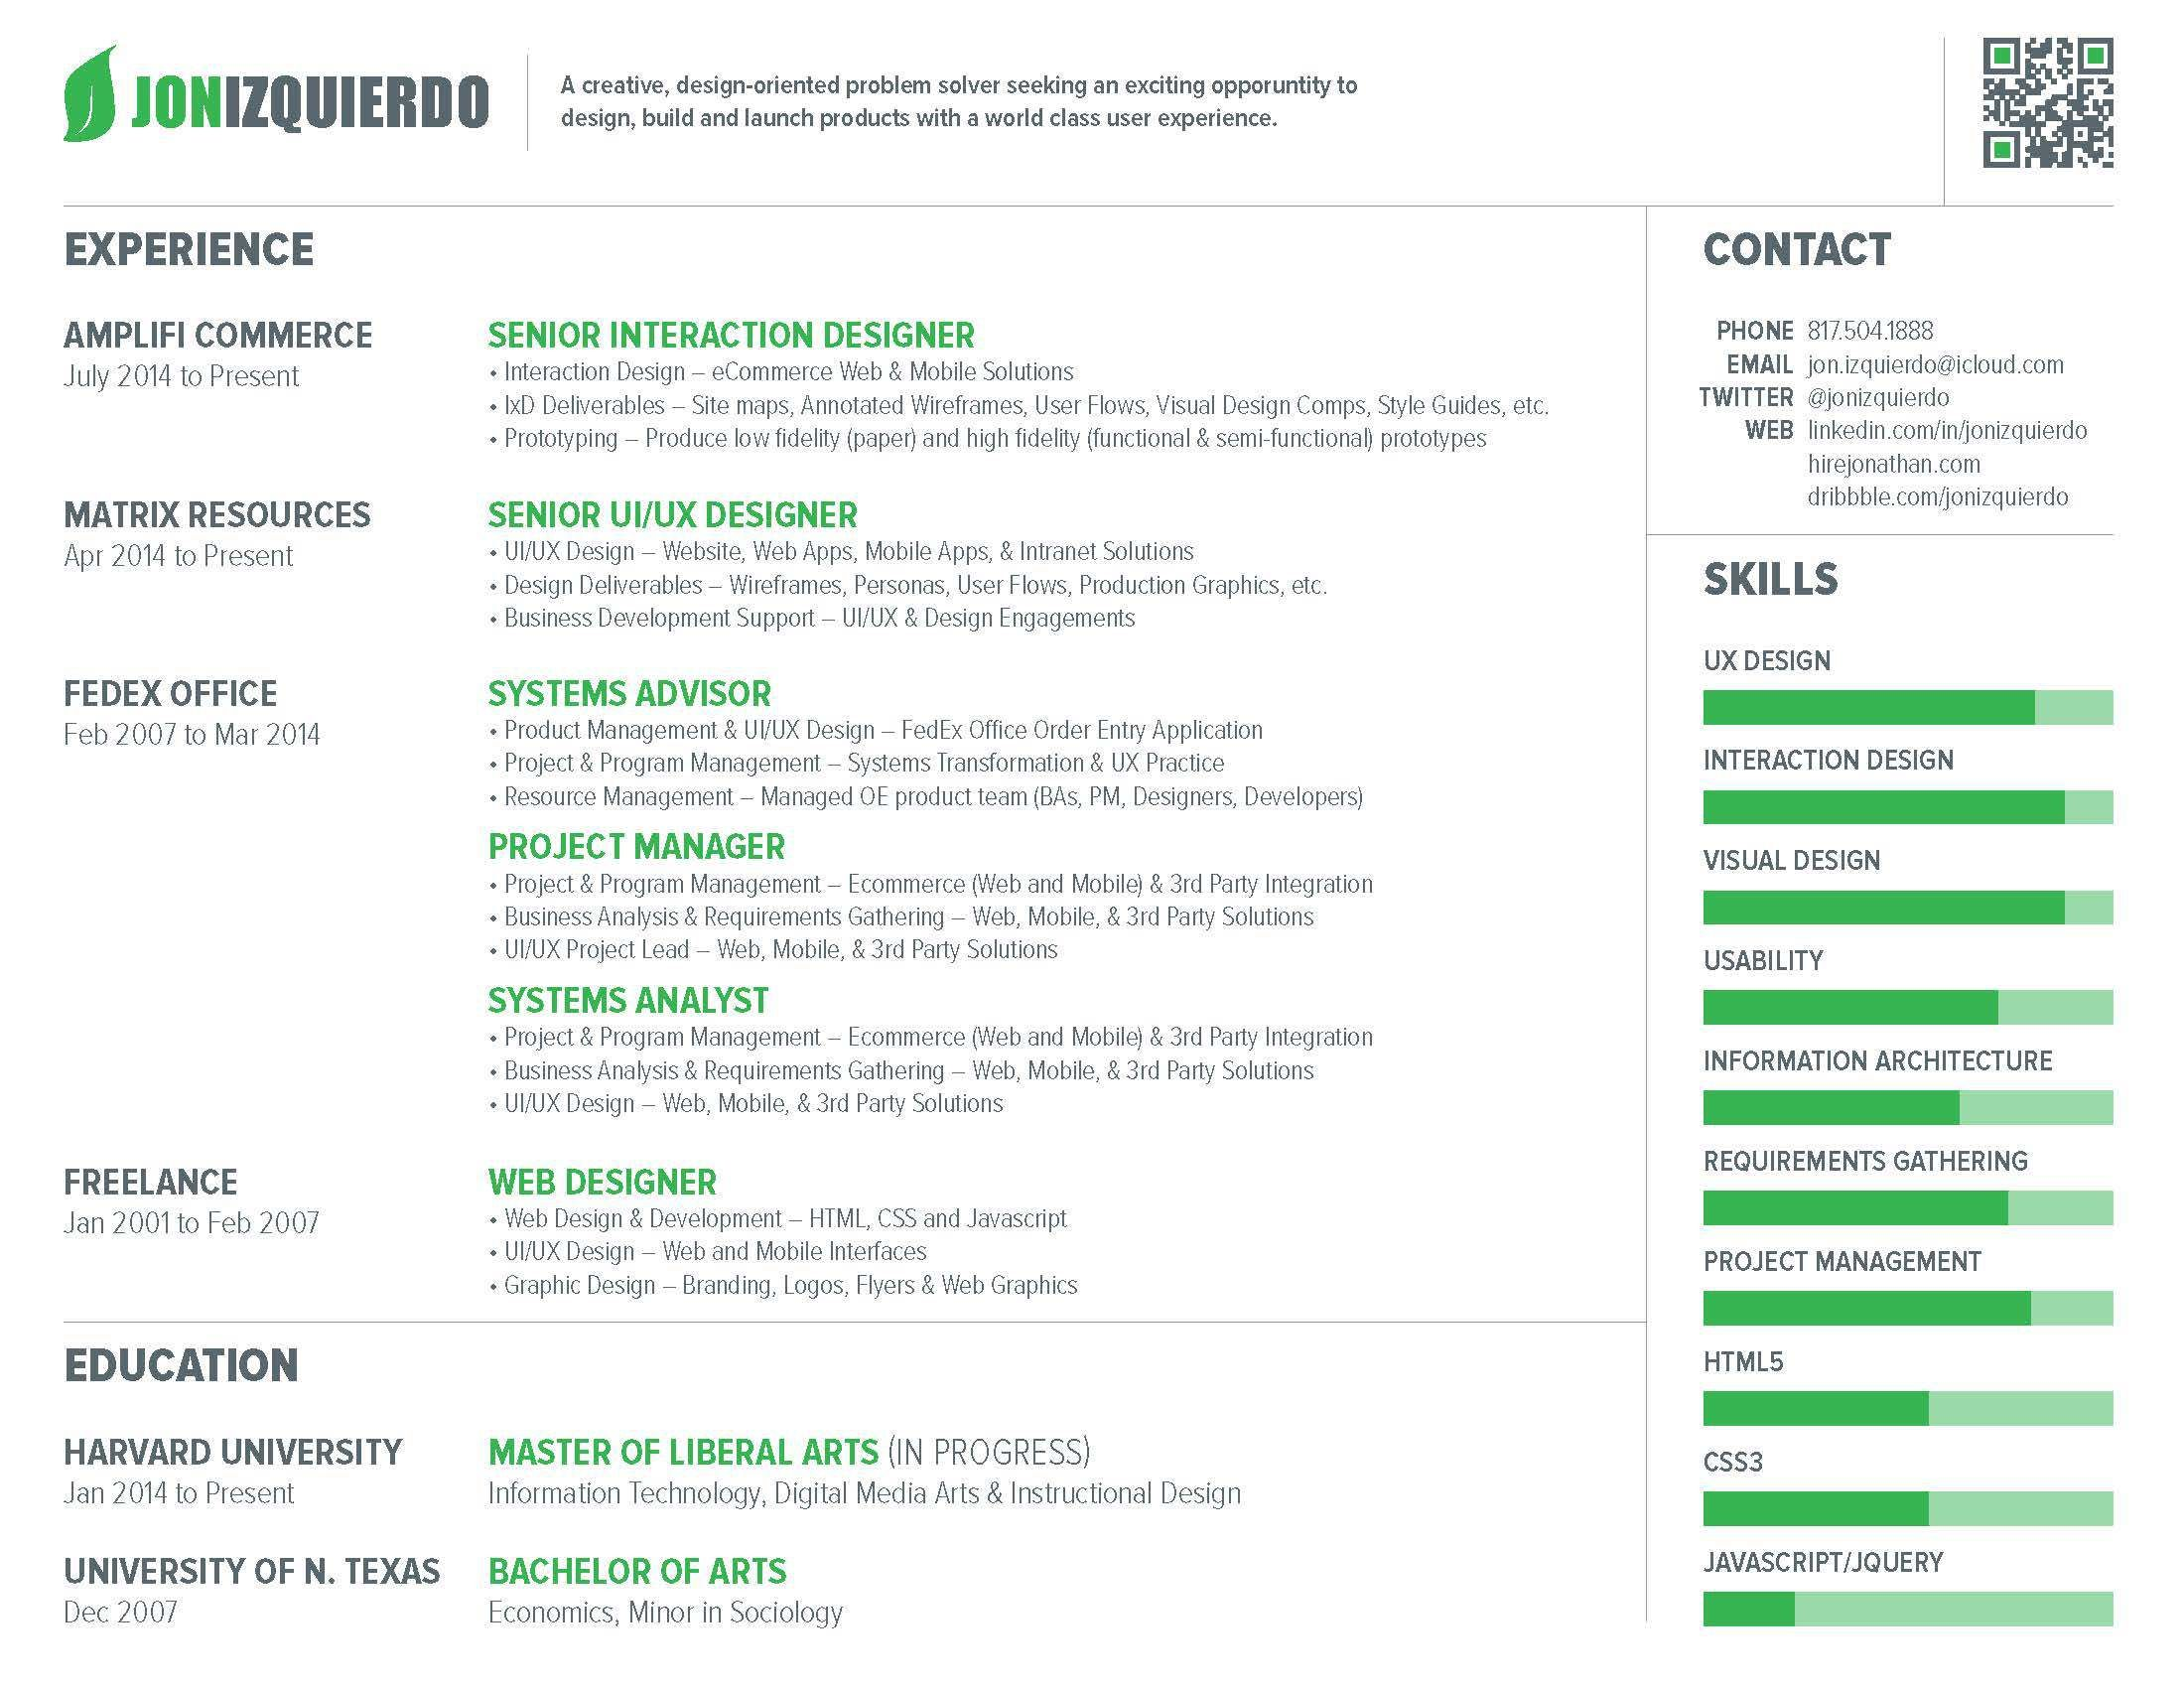 UX Designer Resume How to make your resume stand out - Jon Izquierdo